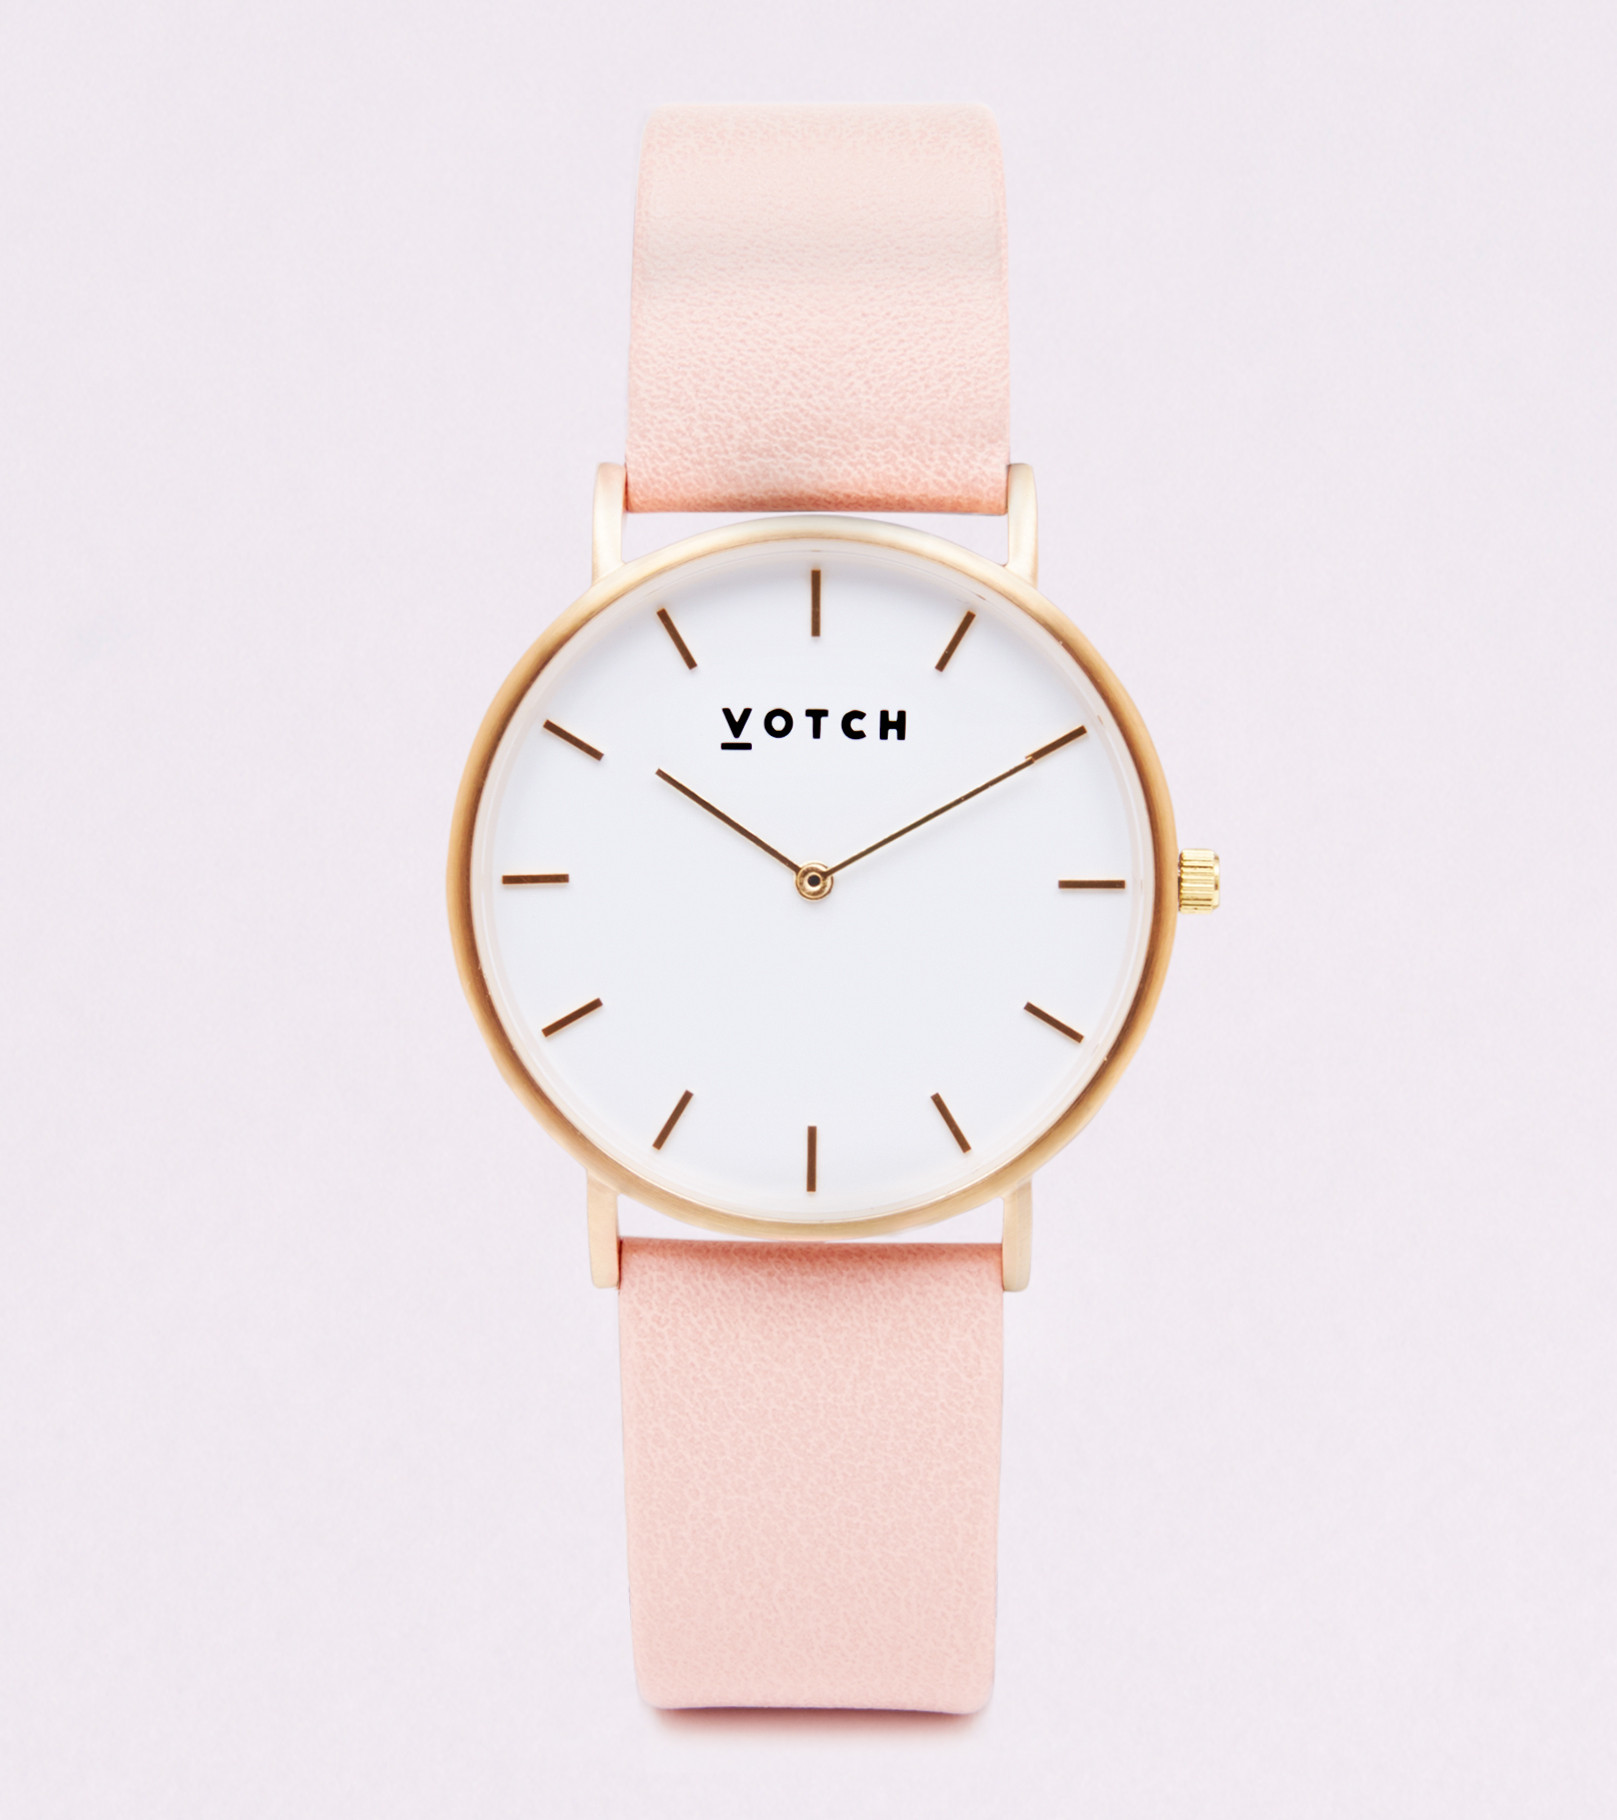 VOTCH   LIMITED EDITION- THE PINK & GOLD  €141